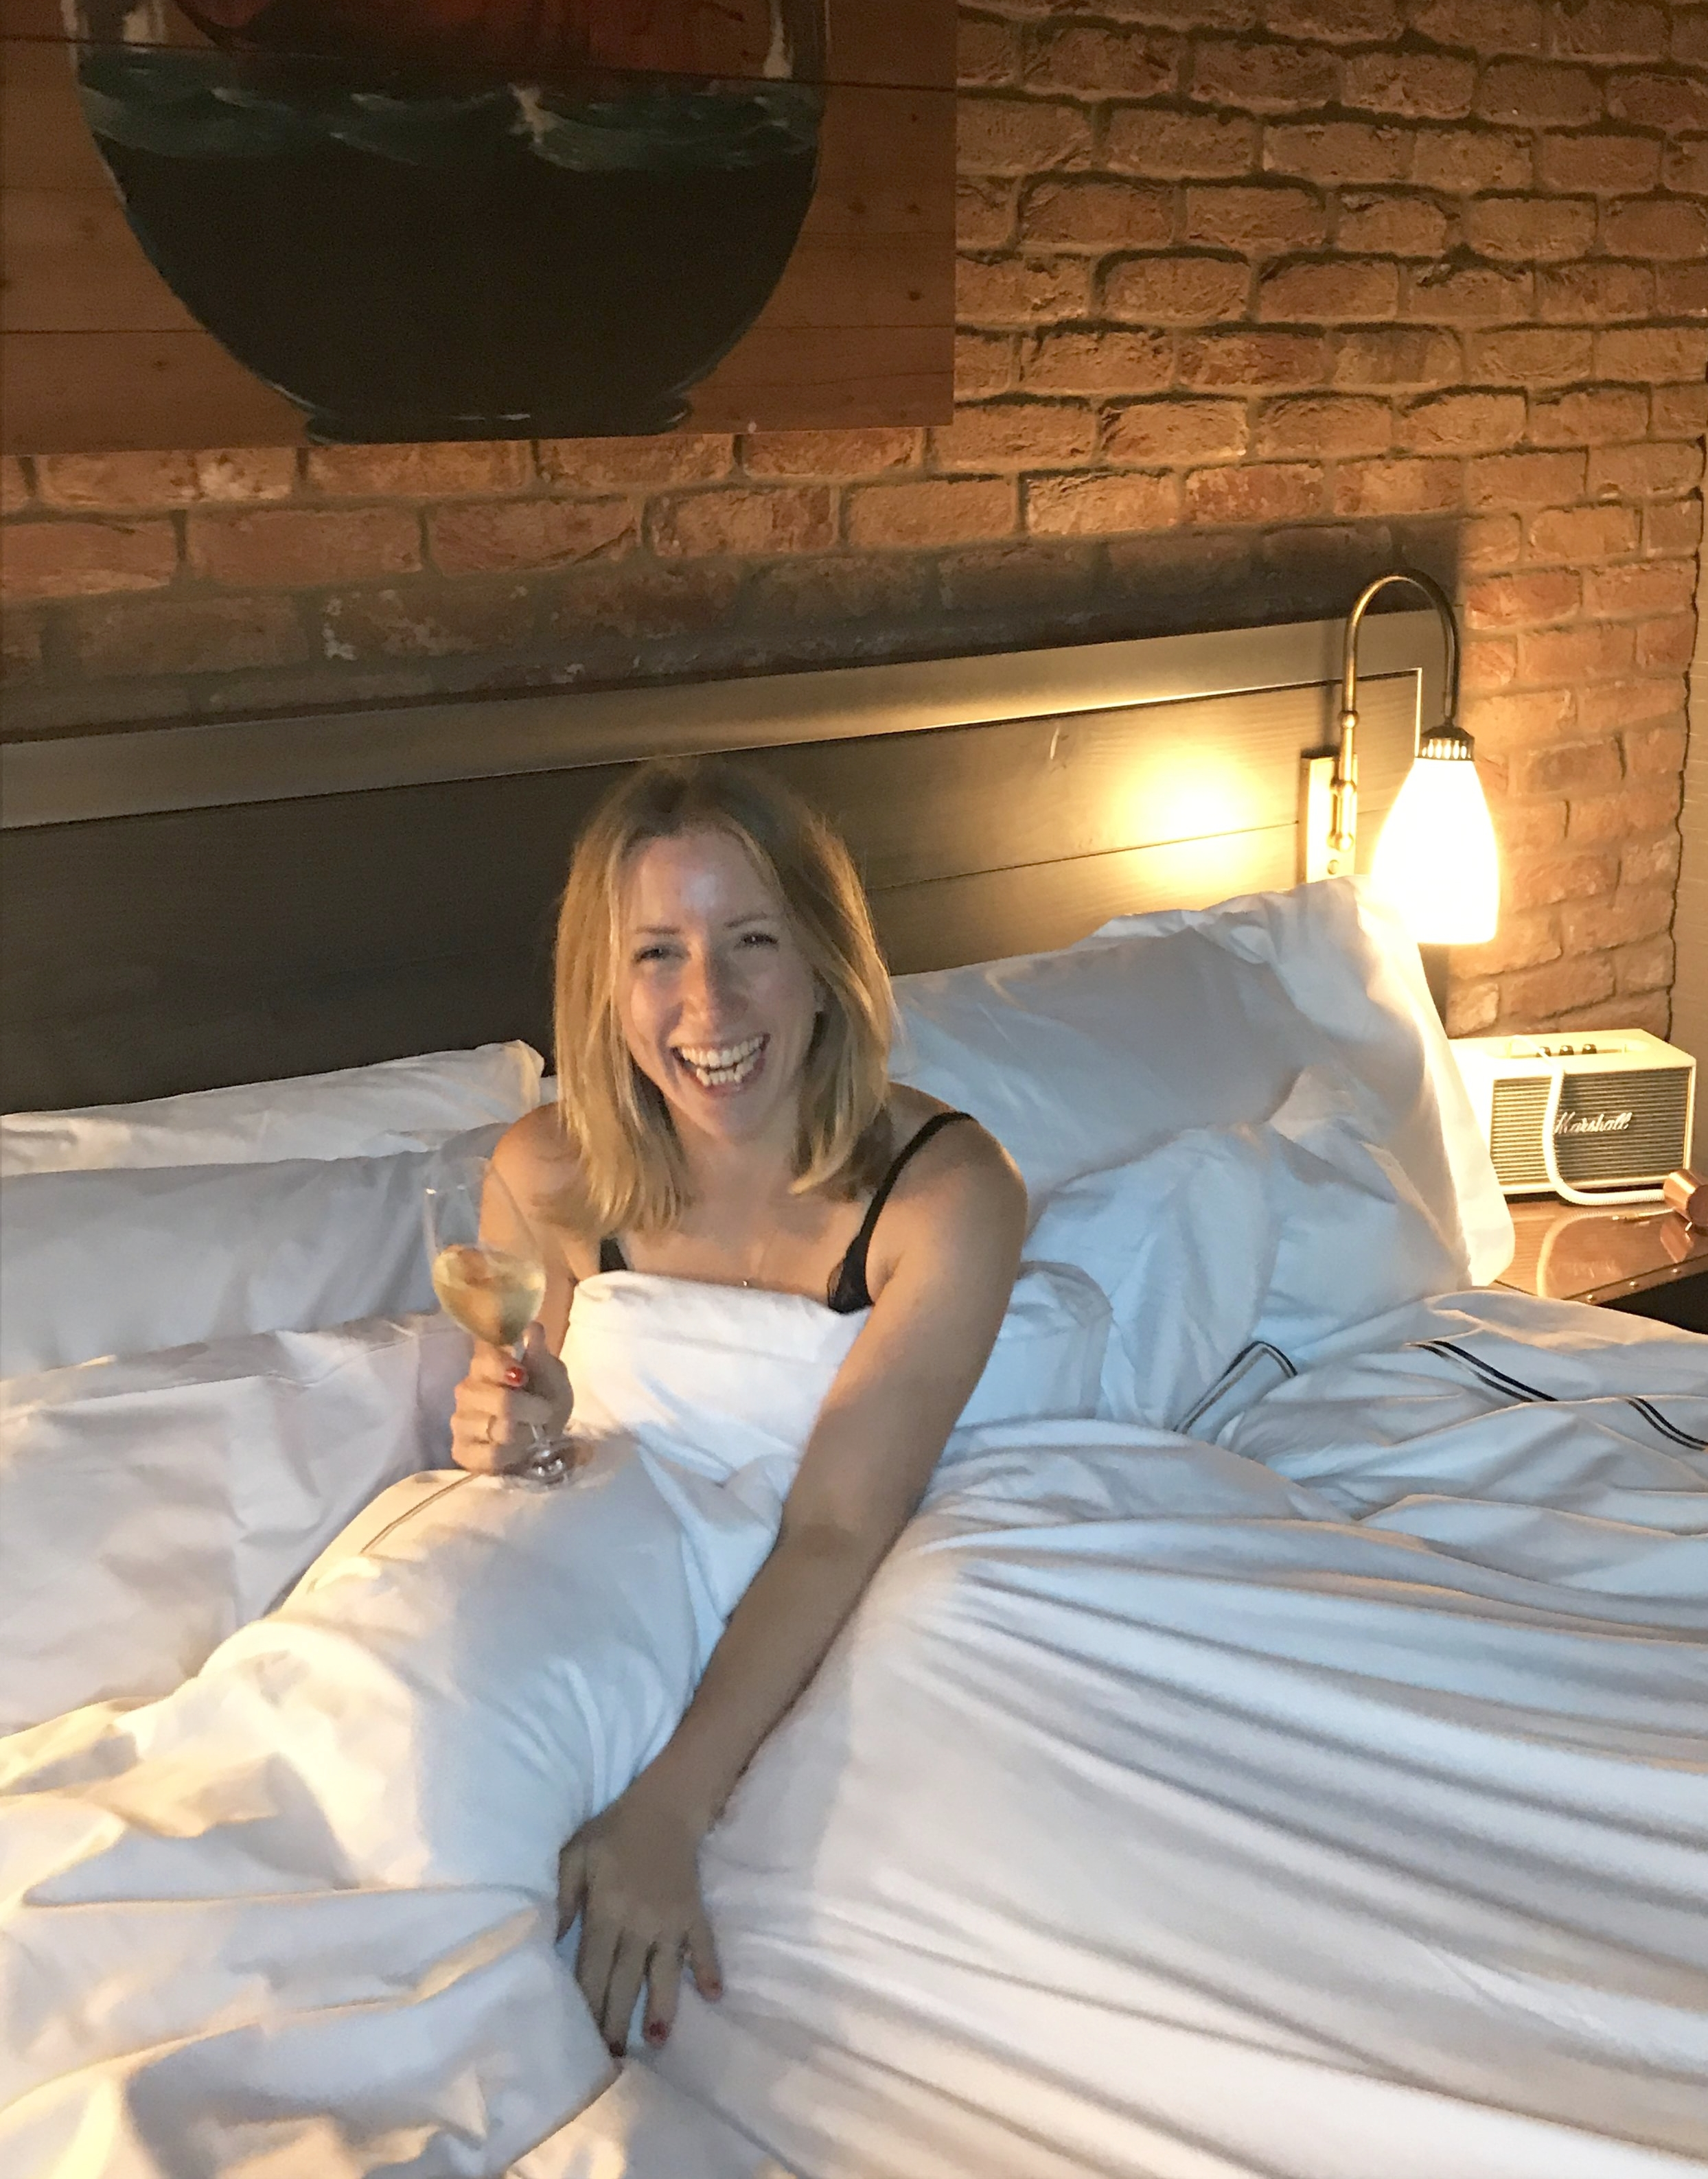 Staycations, midday snoozes and bubbles in bed make me happy!